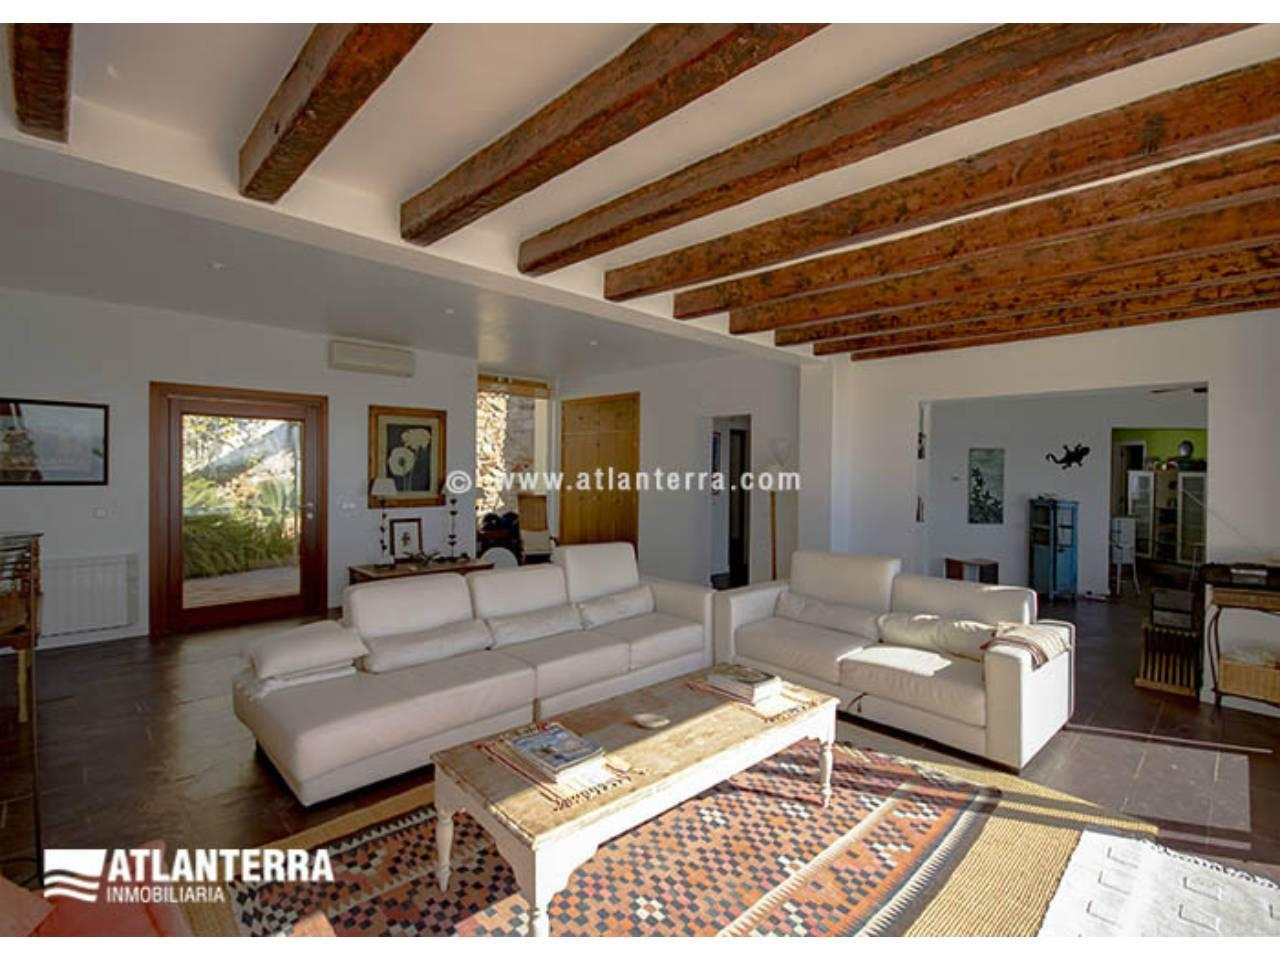 25885350 3170057 foto 075273 - Rustic style, privacy and wonderful views in this villa in Zahara de los Atunes (Cádiz)